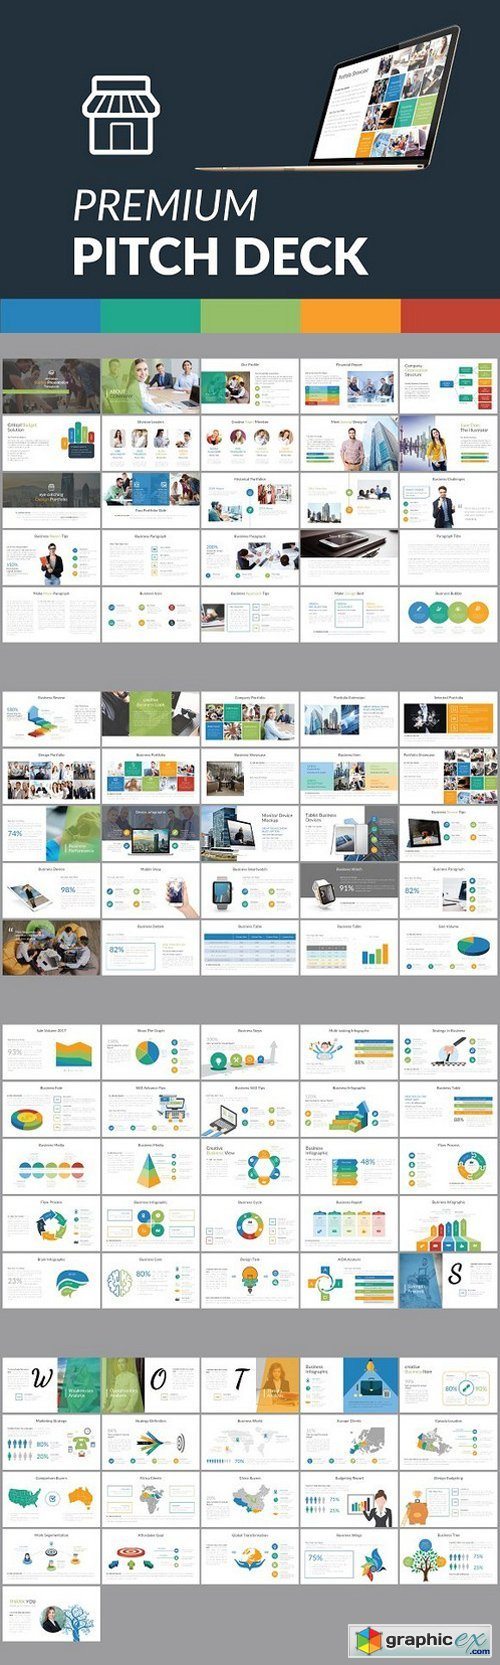 Premium Pitch Deck Template Free Download Vector Stock Image